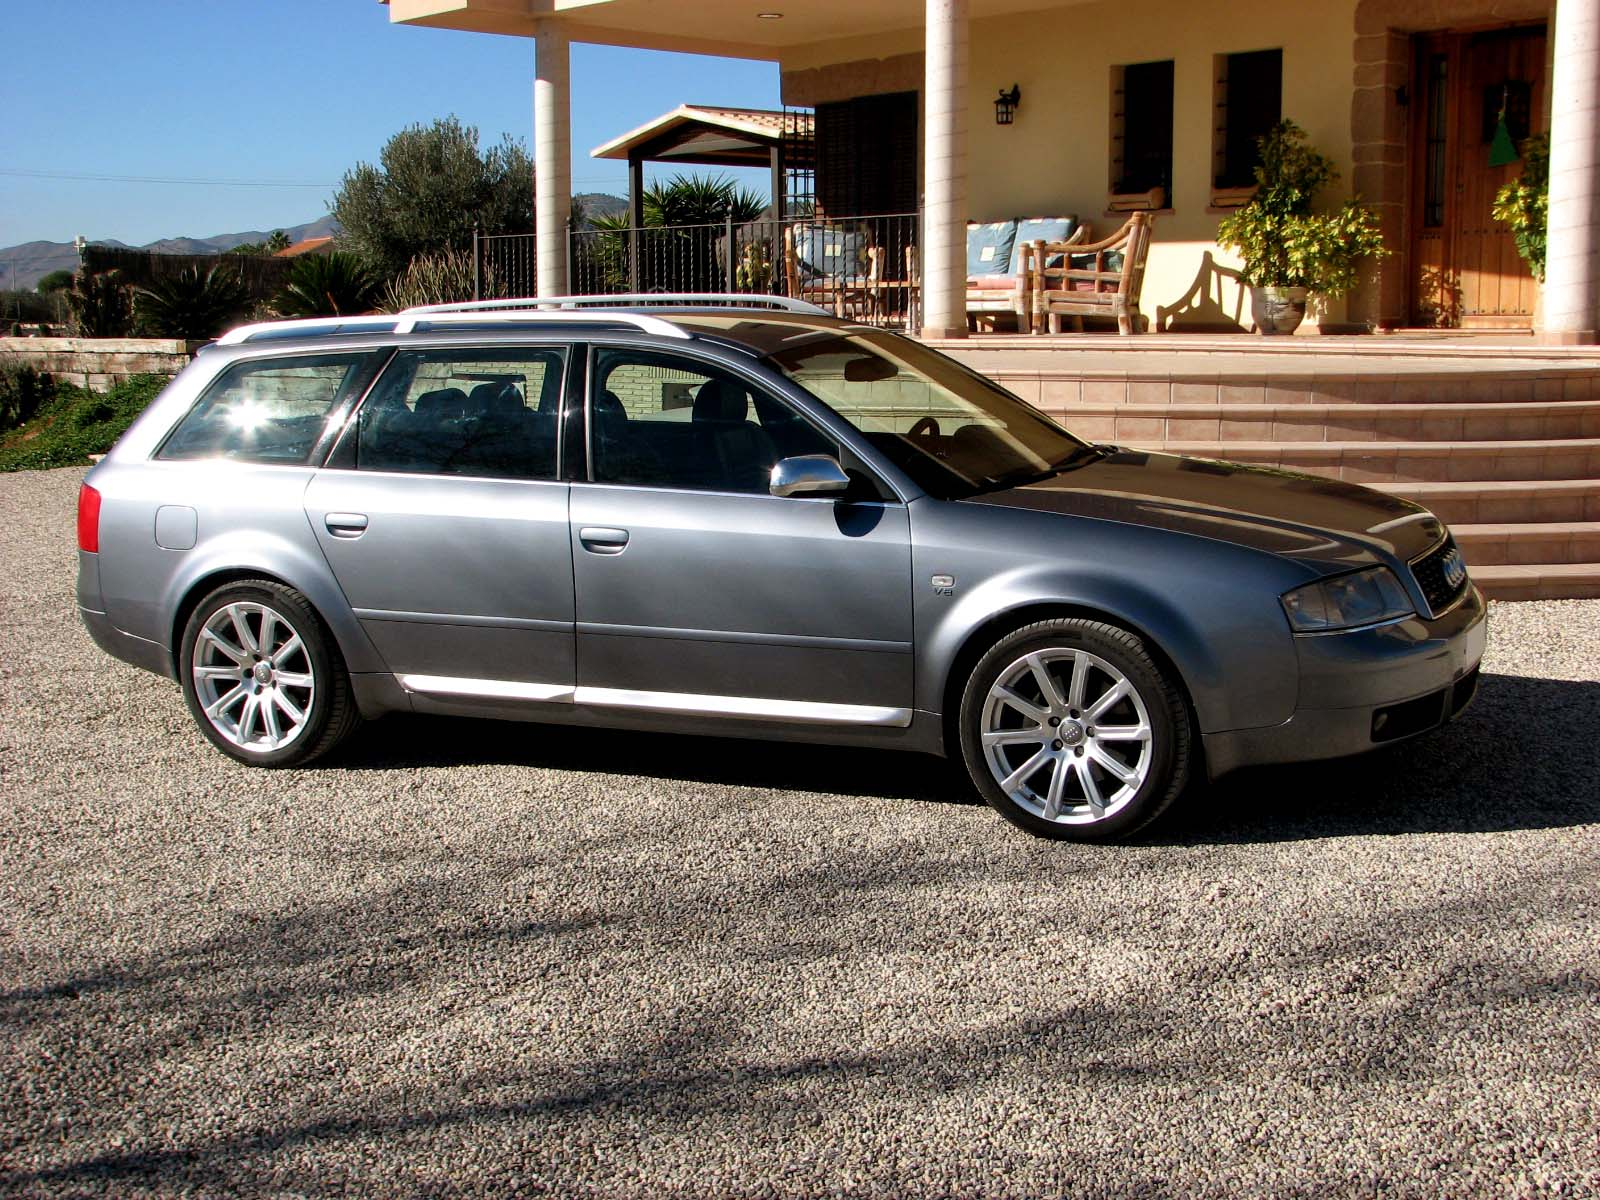 Picture of 2001 S6 Avant Quattro Sport-Navigation V8 340 BHP Manual